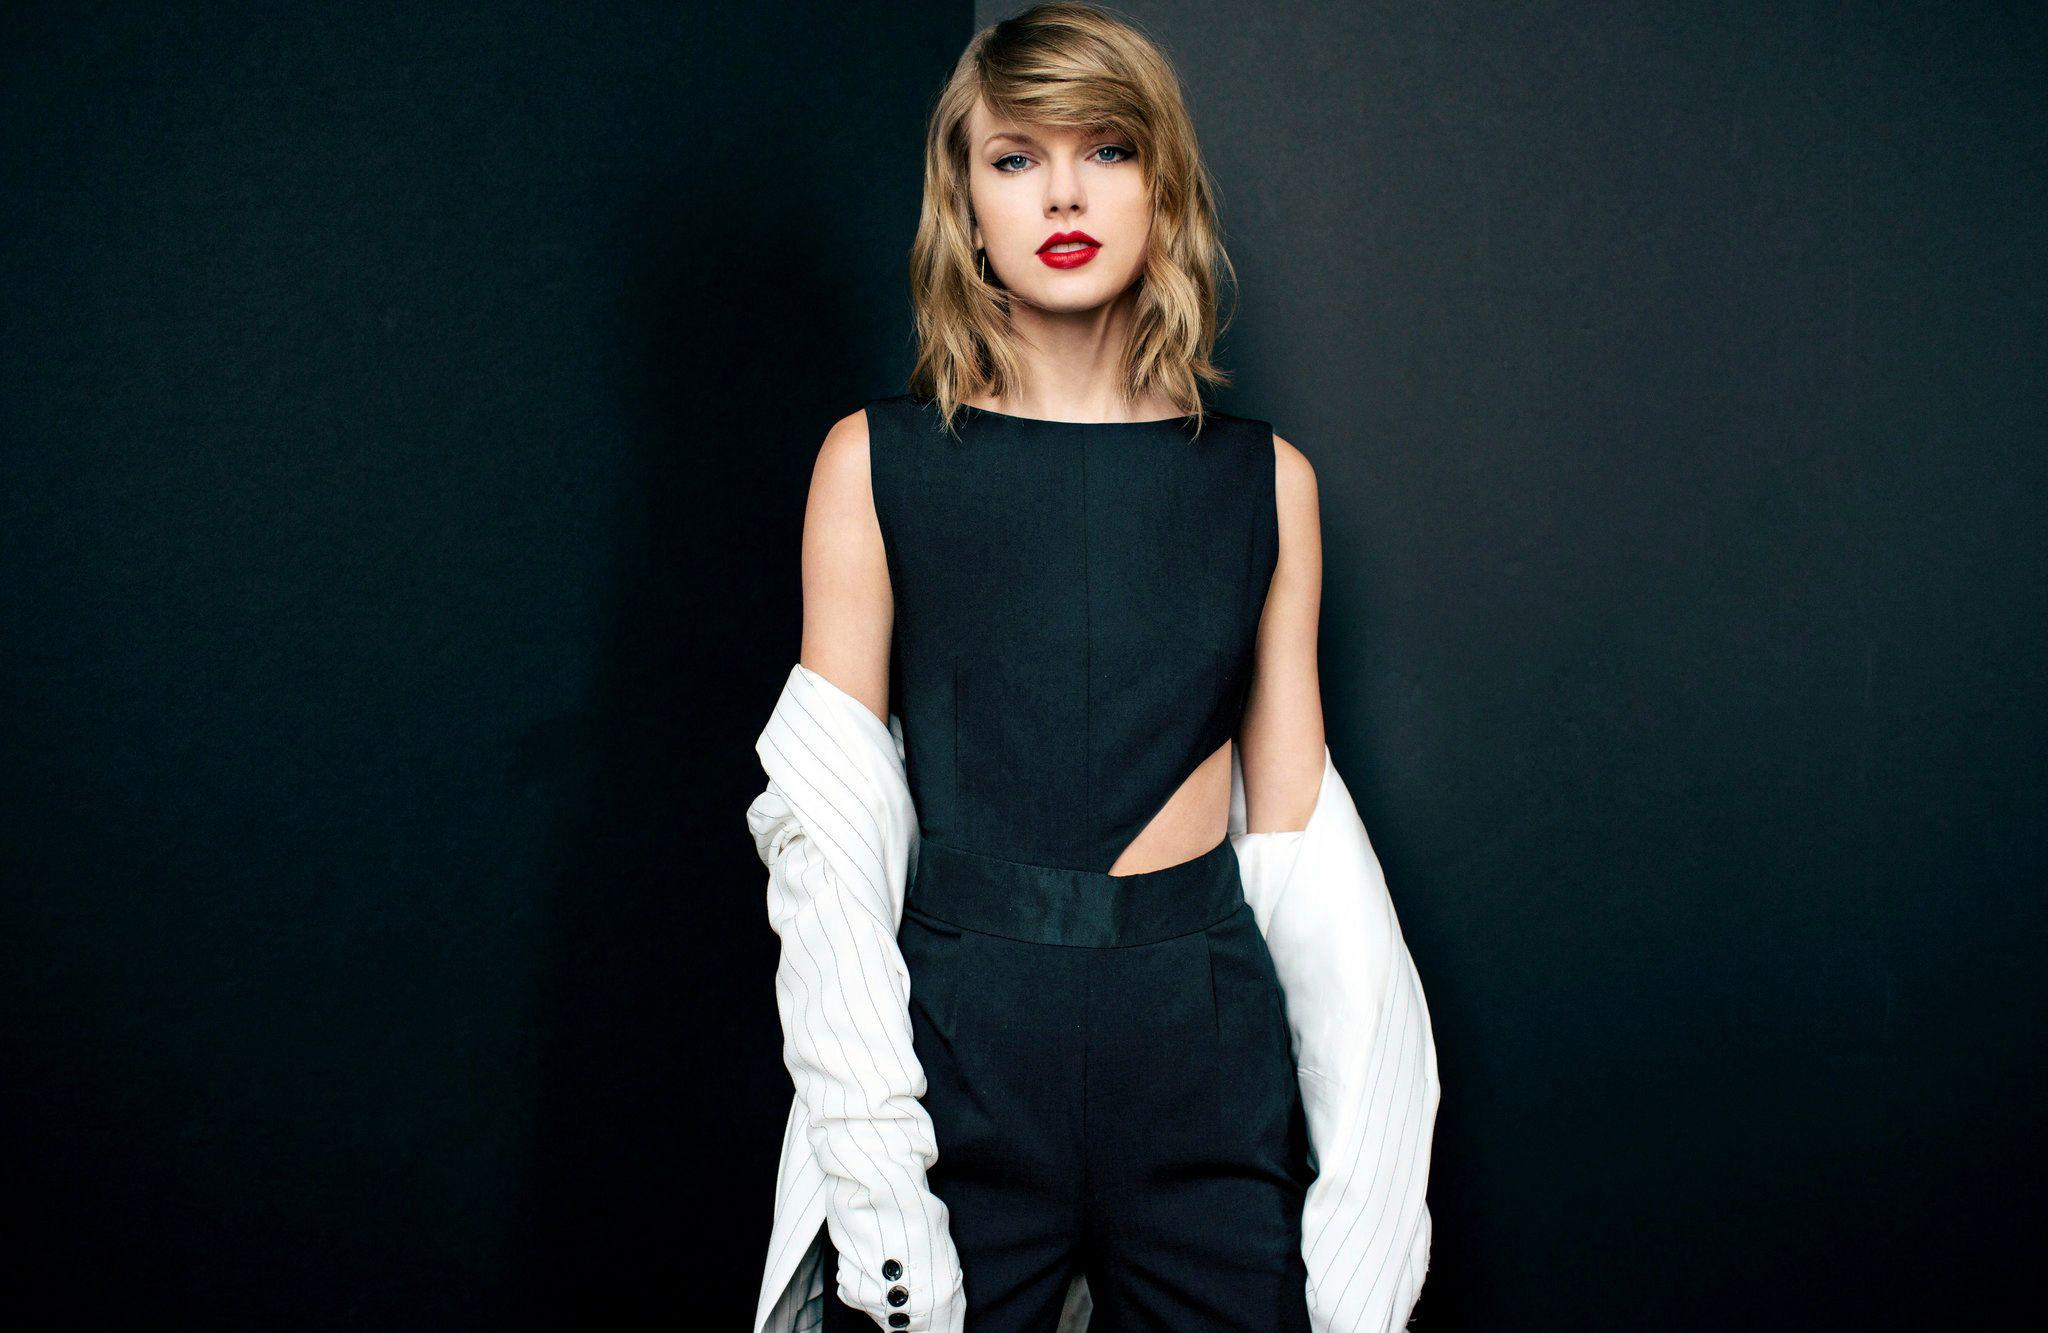 Taylor Swift Wallpaper (83 Wallpapers) – HD Wallpapers